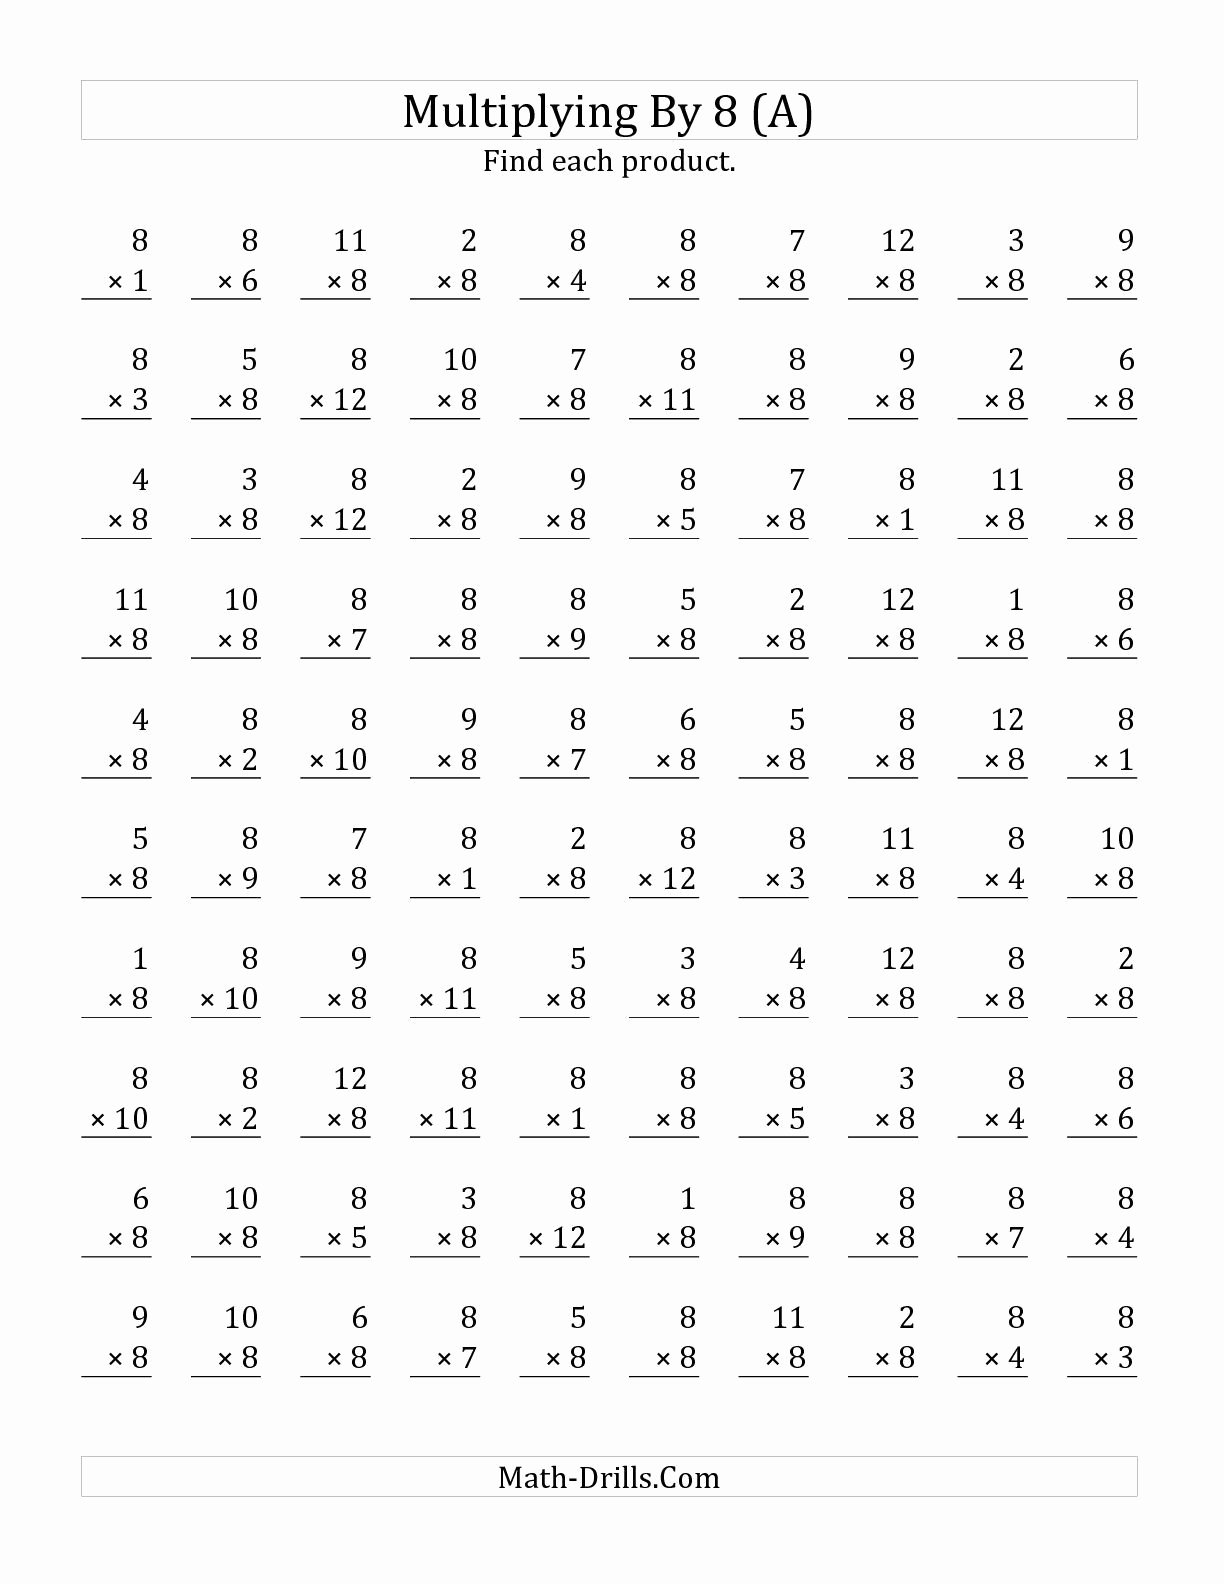 Multiplication Worksheets 8 Lovely the Multiplying 1 to 12 by 8 A Math Worksheet From the